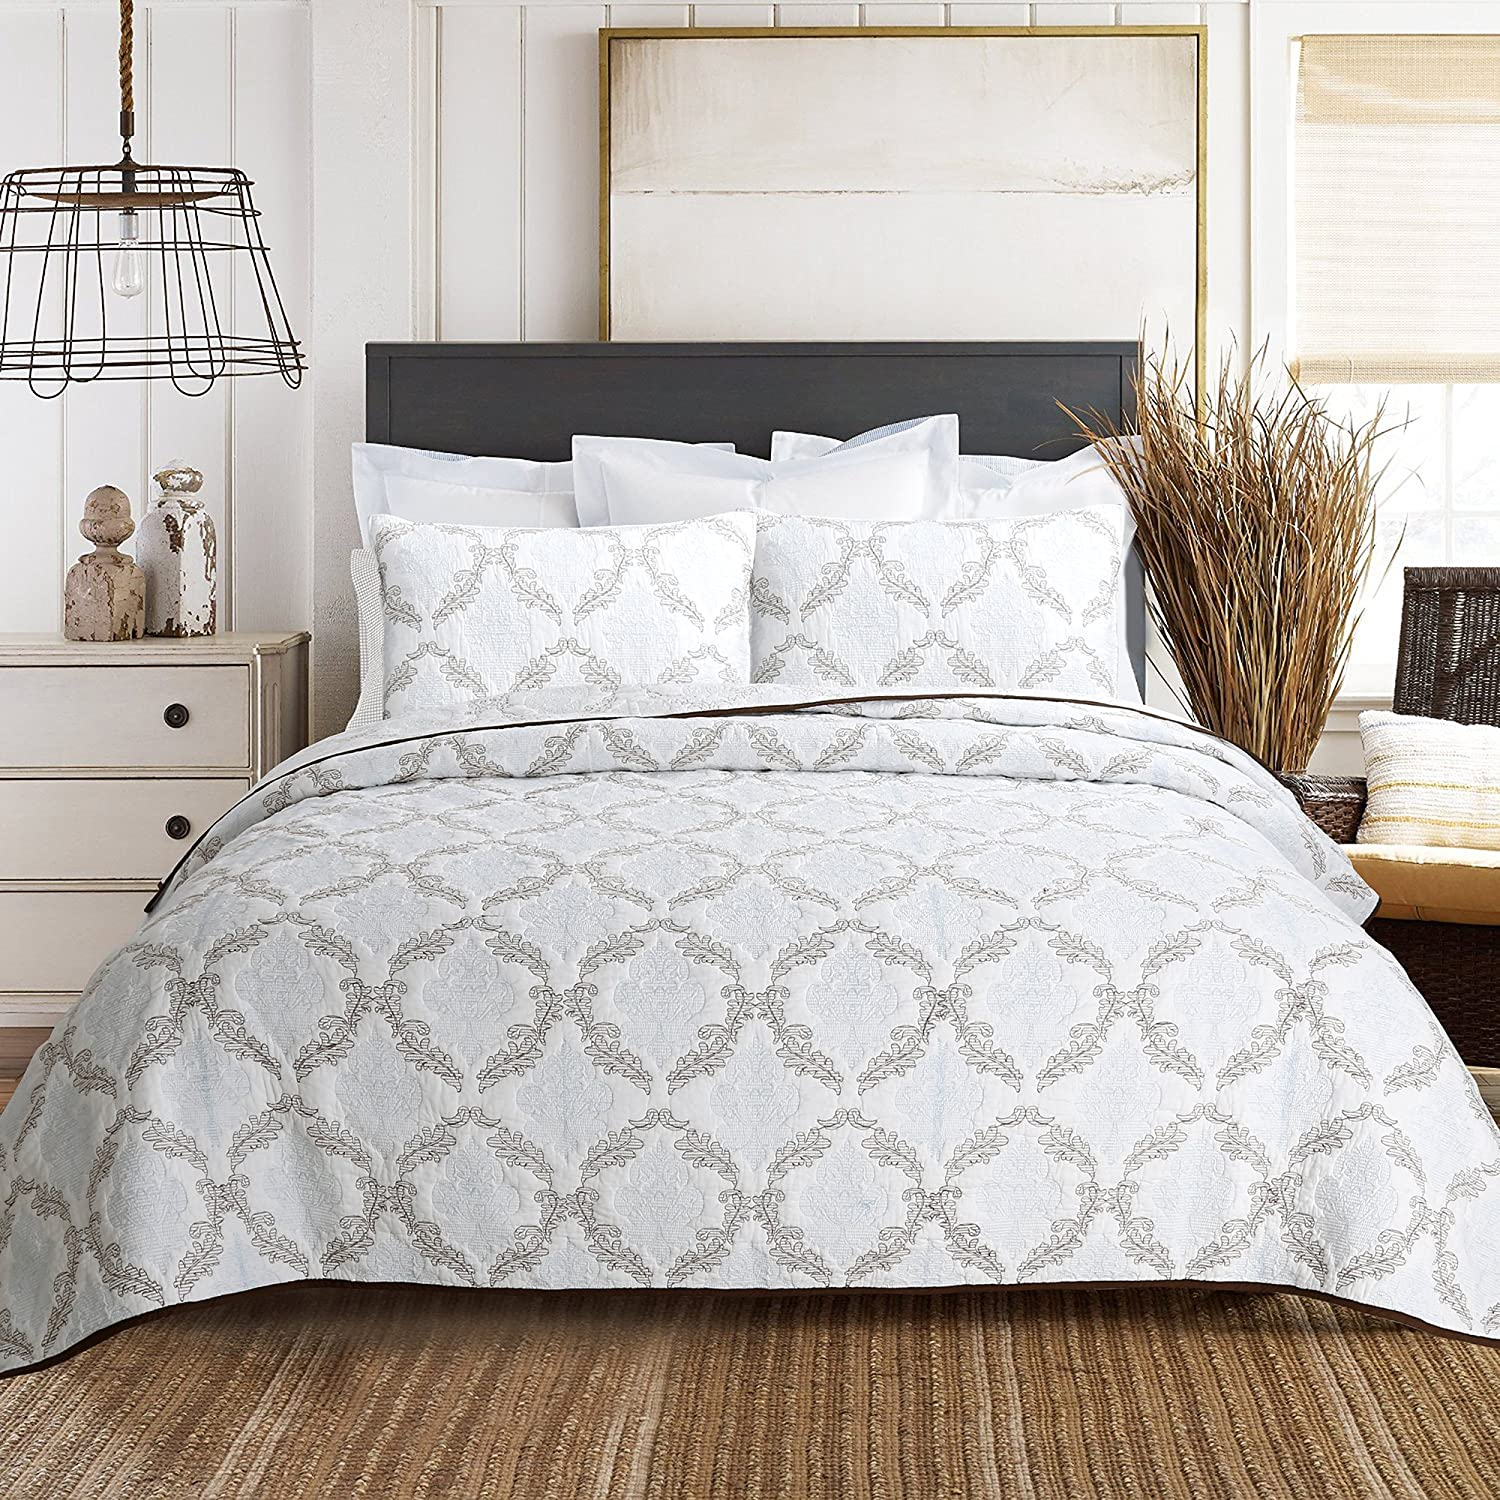 Cozy Line Home Fashions Baroque Embroidered Medallion White Light Blue Brown Bedding Quilt Set, 100% Cotton Coverlet, Bedspread for Bedroom/Guestroom (Elizabeth - Embossing A, Queen - 3 Piece)